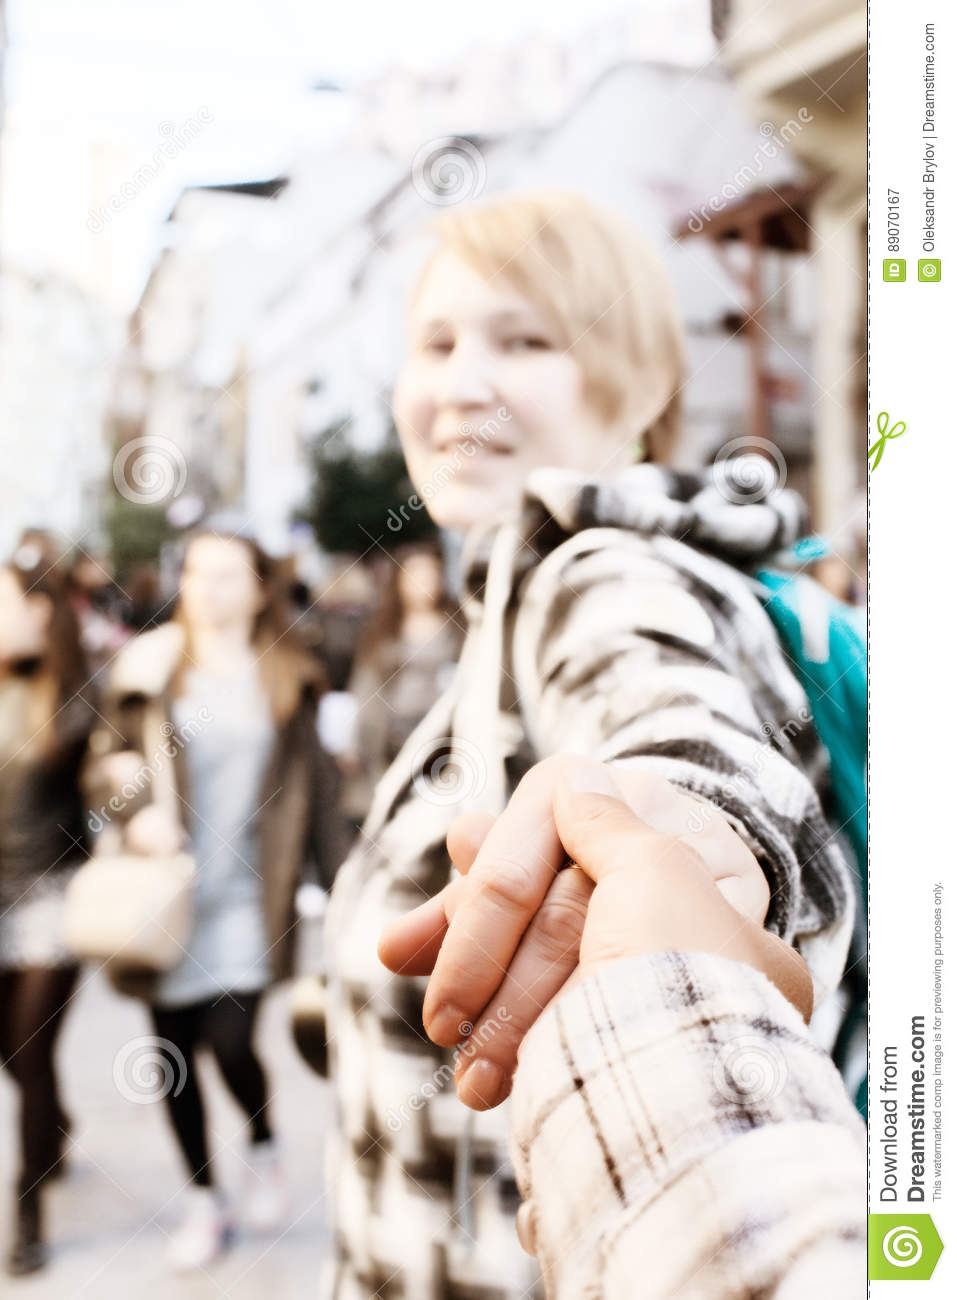 Woman Pulling Someone Hand And Walking Toward Crowded City Street